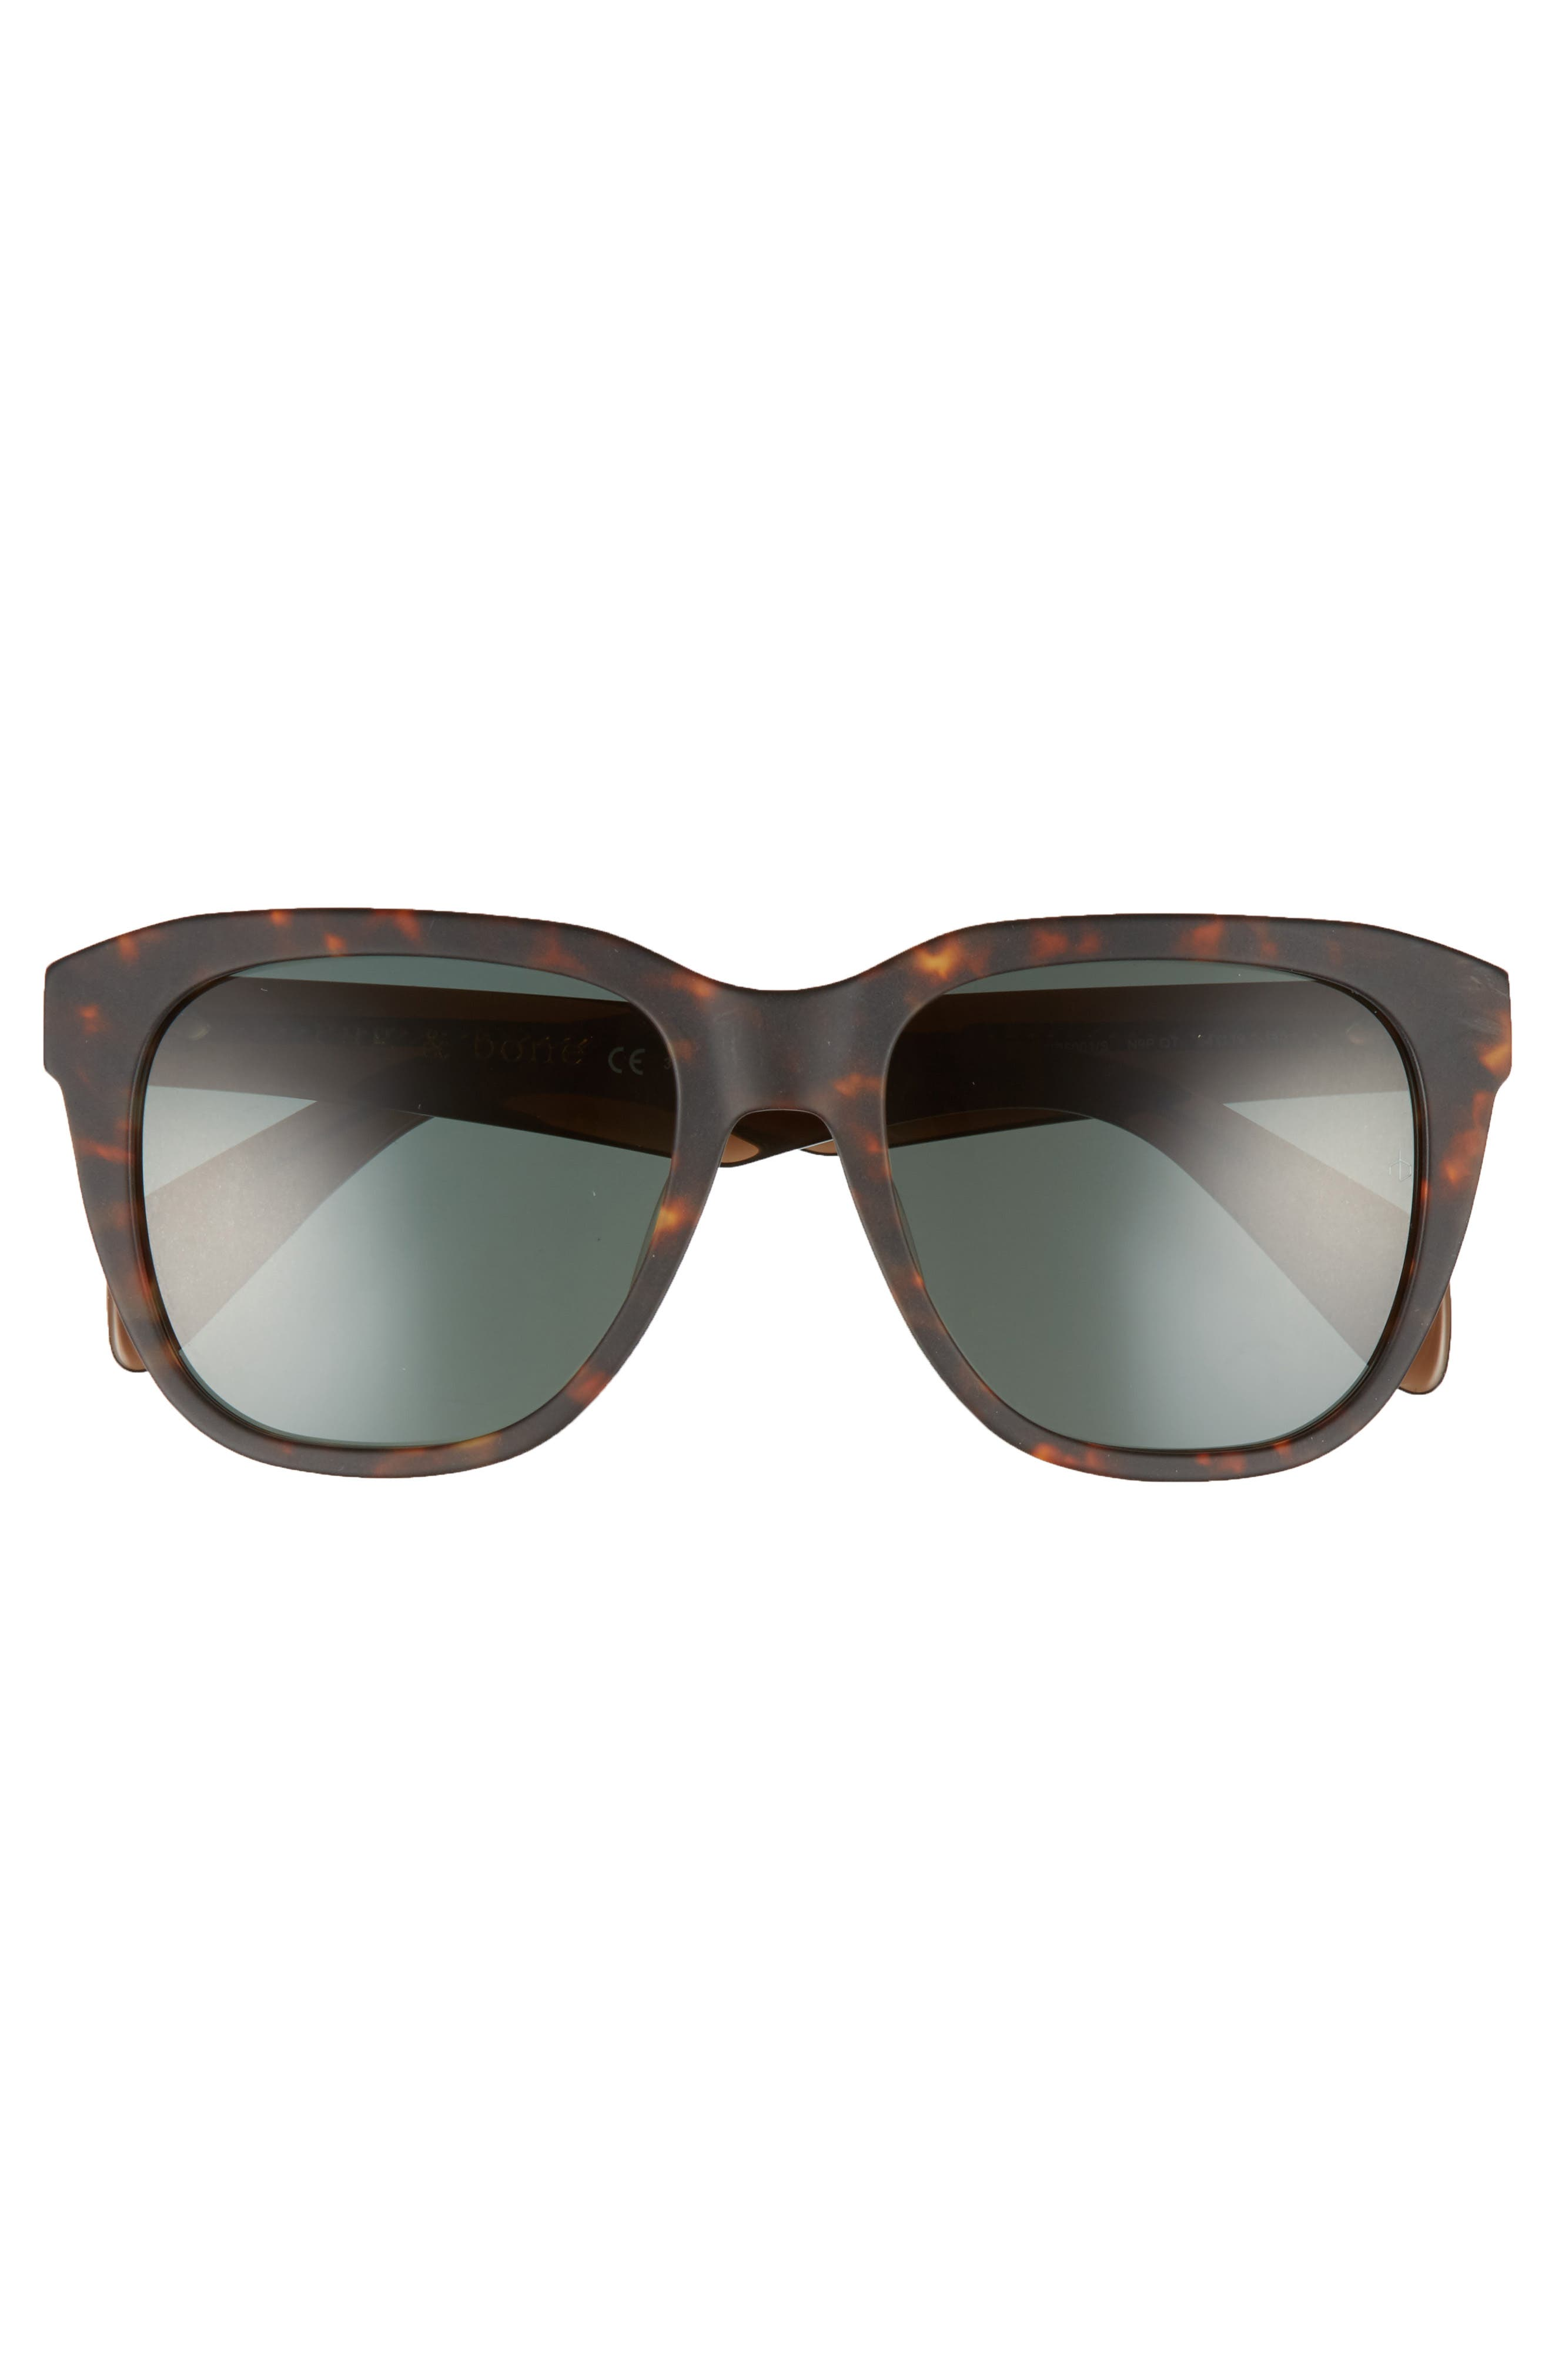 54mm Sunglasses,                             Alternate thumbnail 2, color,                             MATTE HAVANA